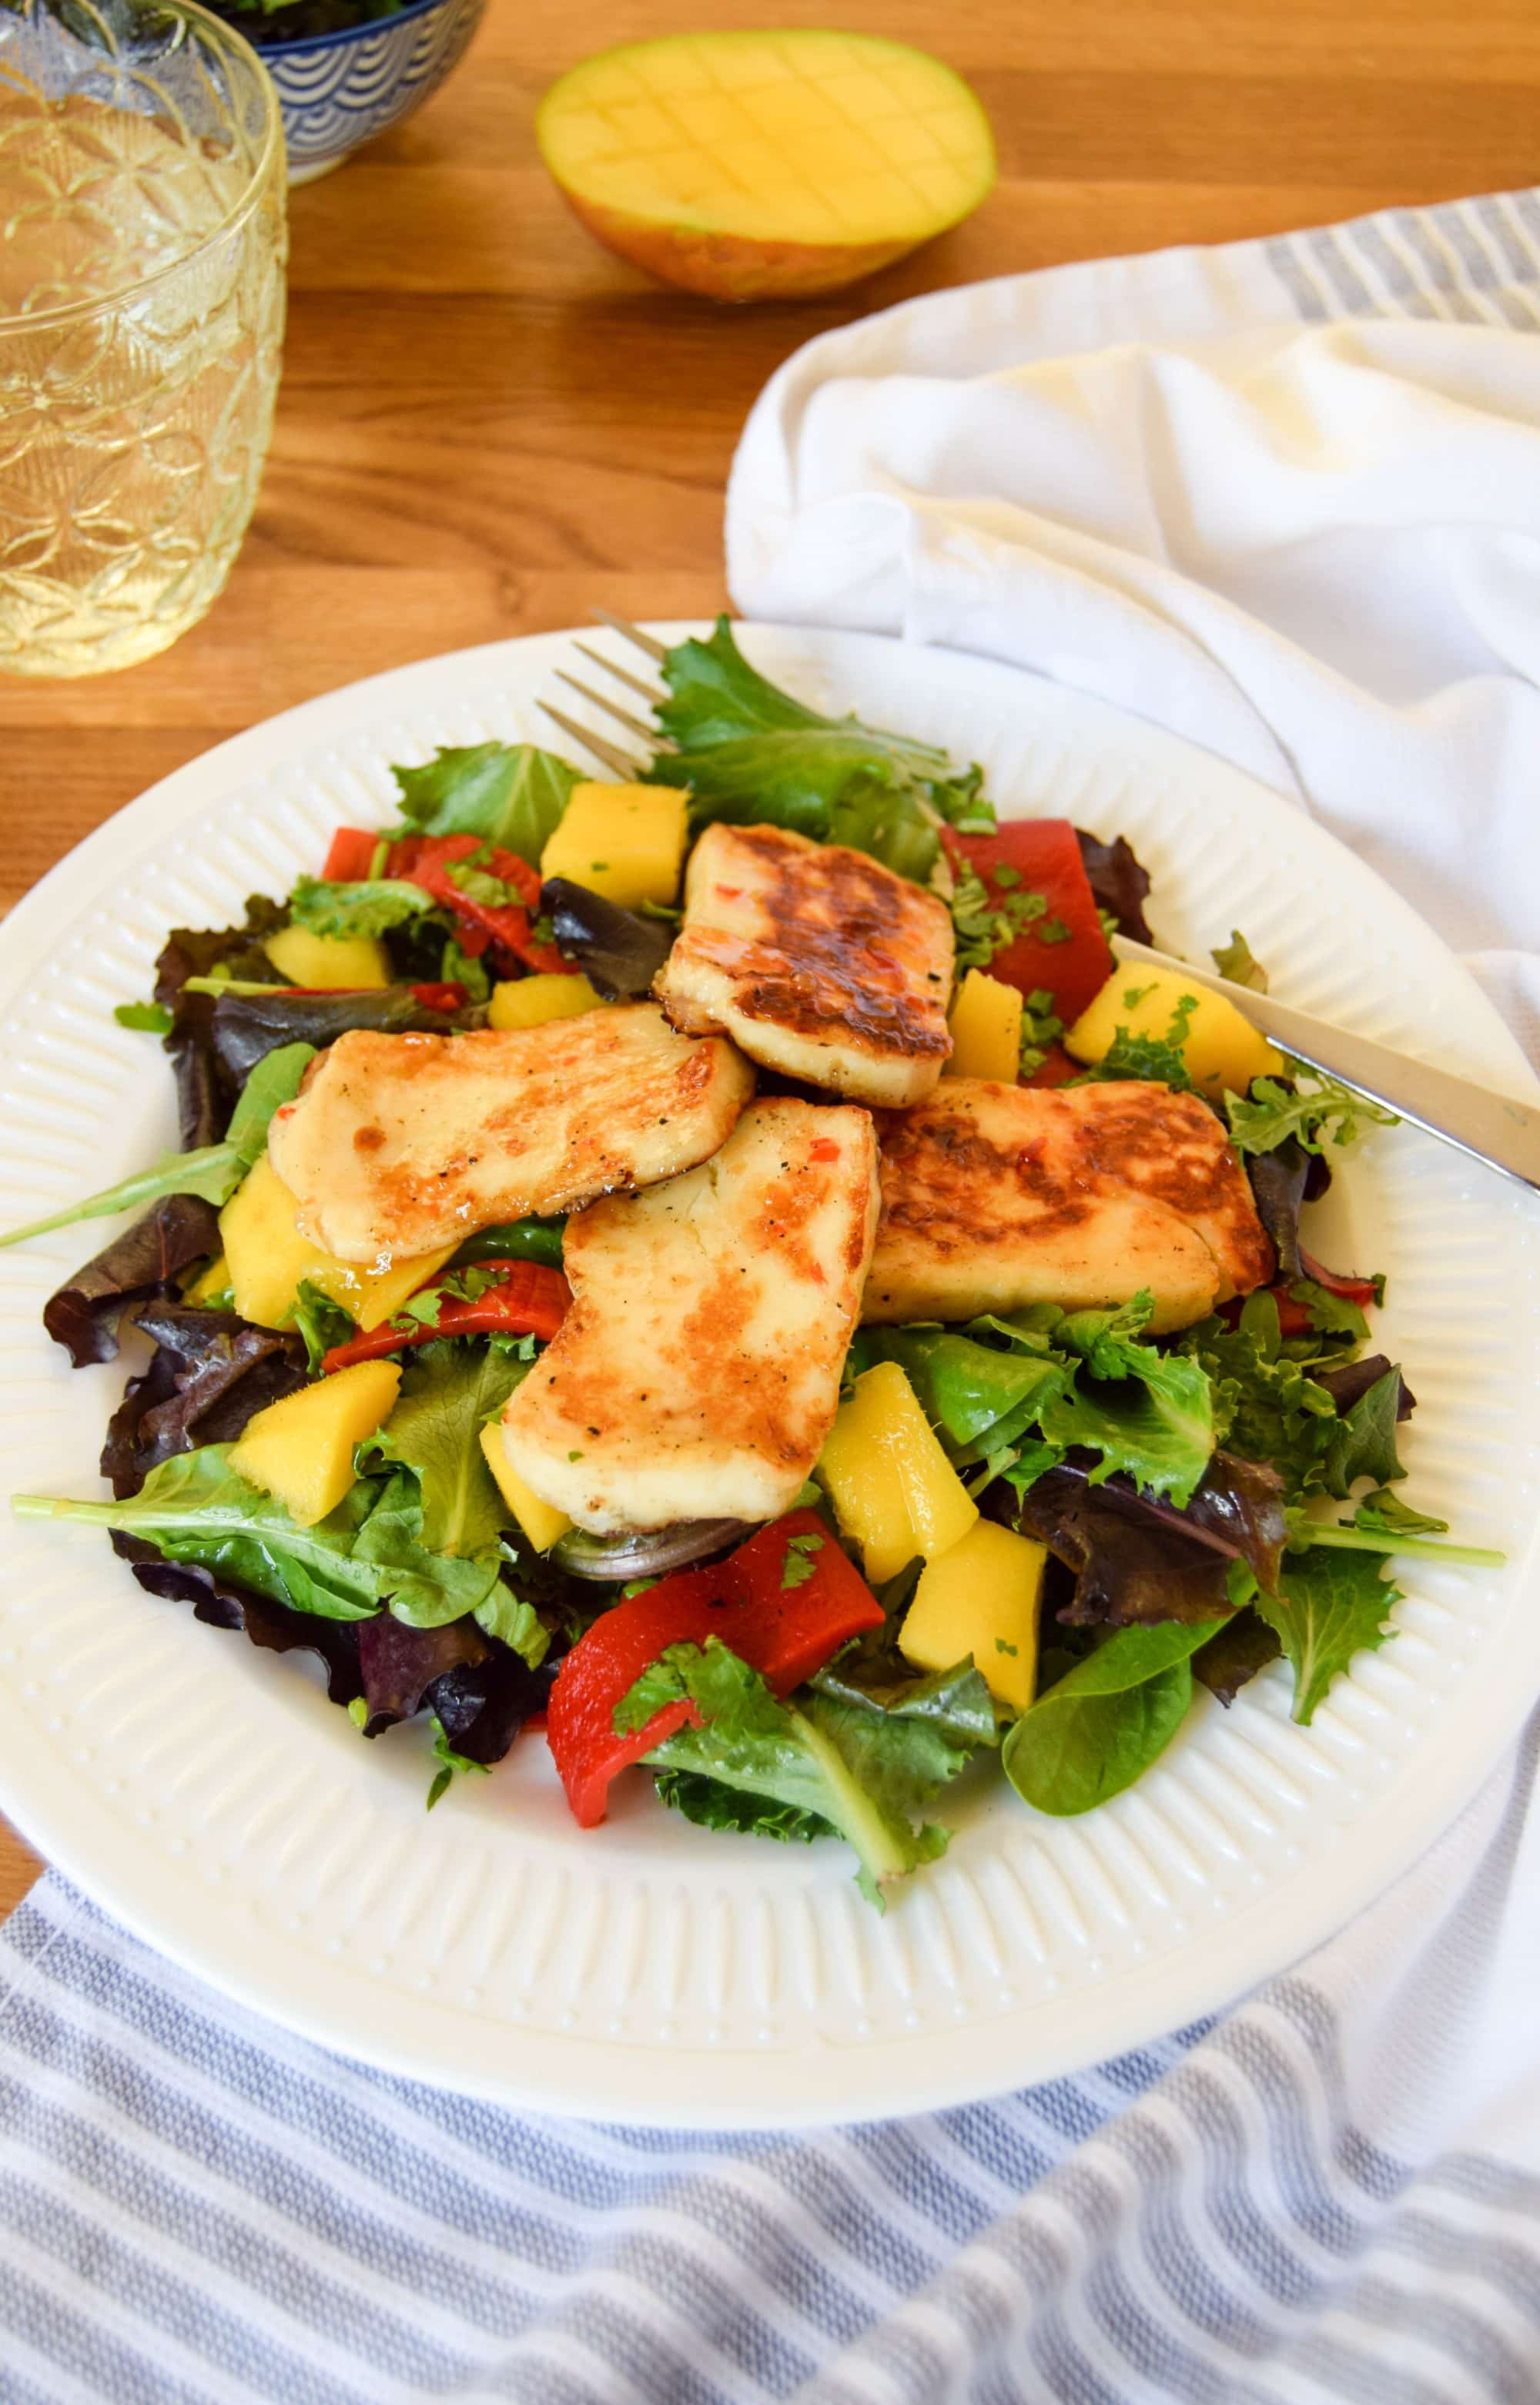 sweet chili halloumi and mango salad on a plate